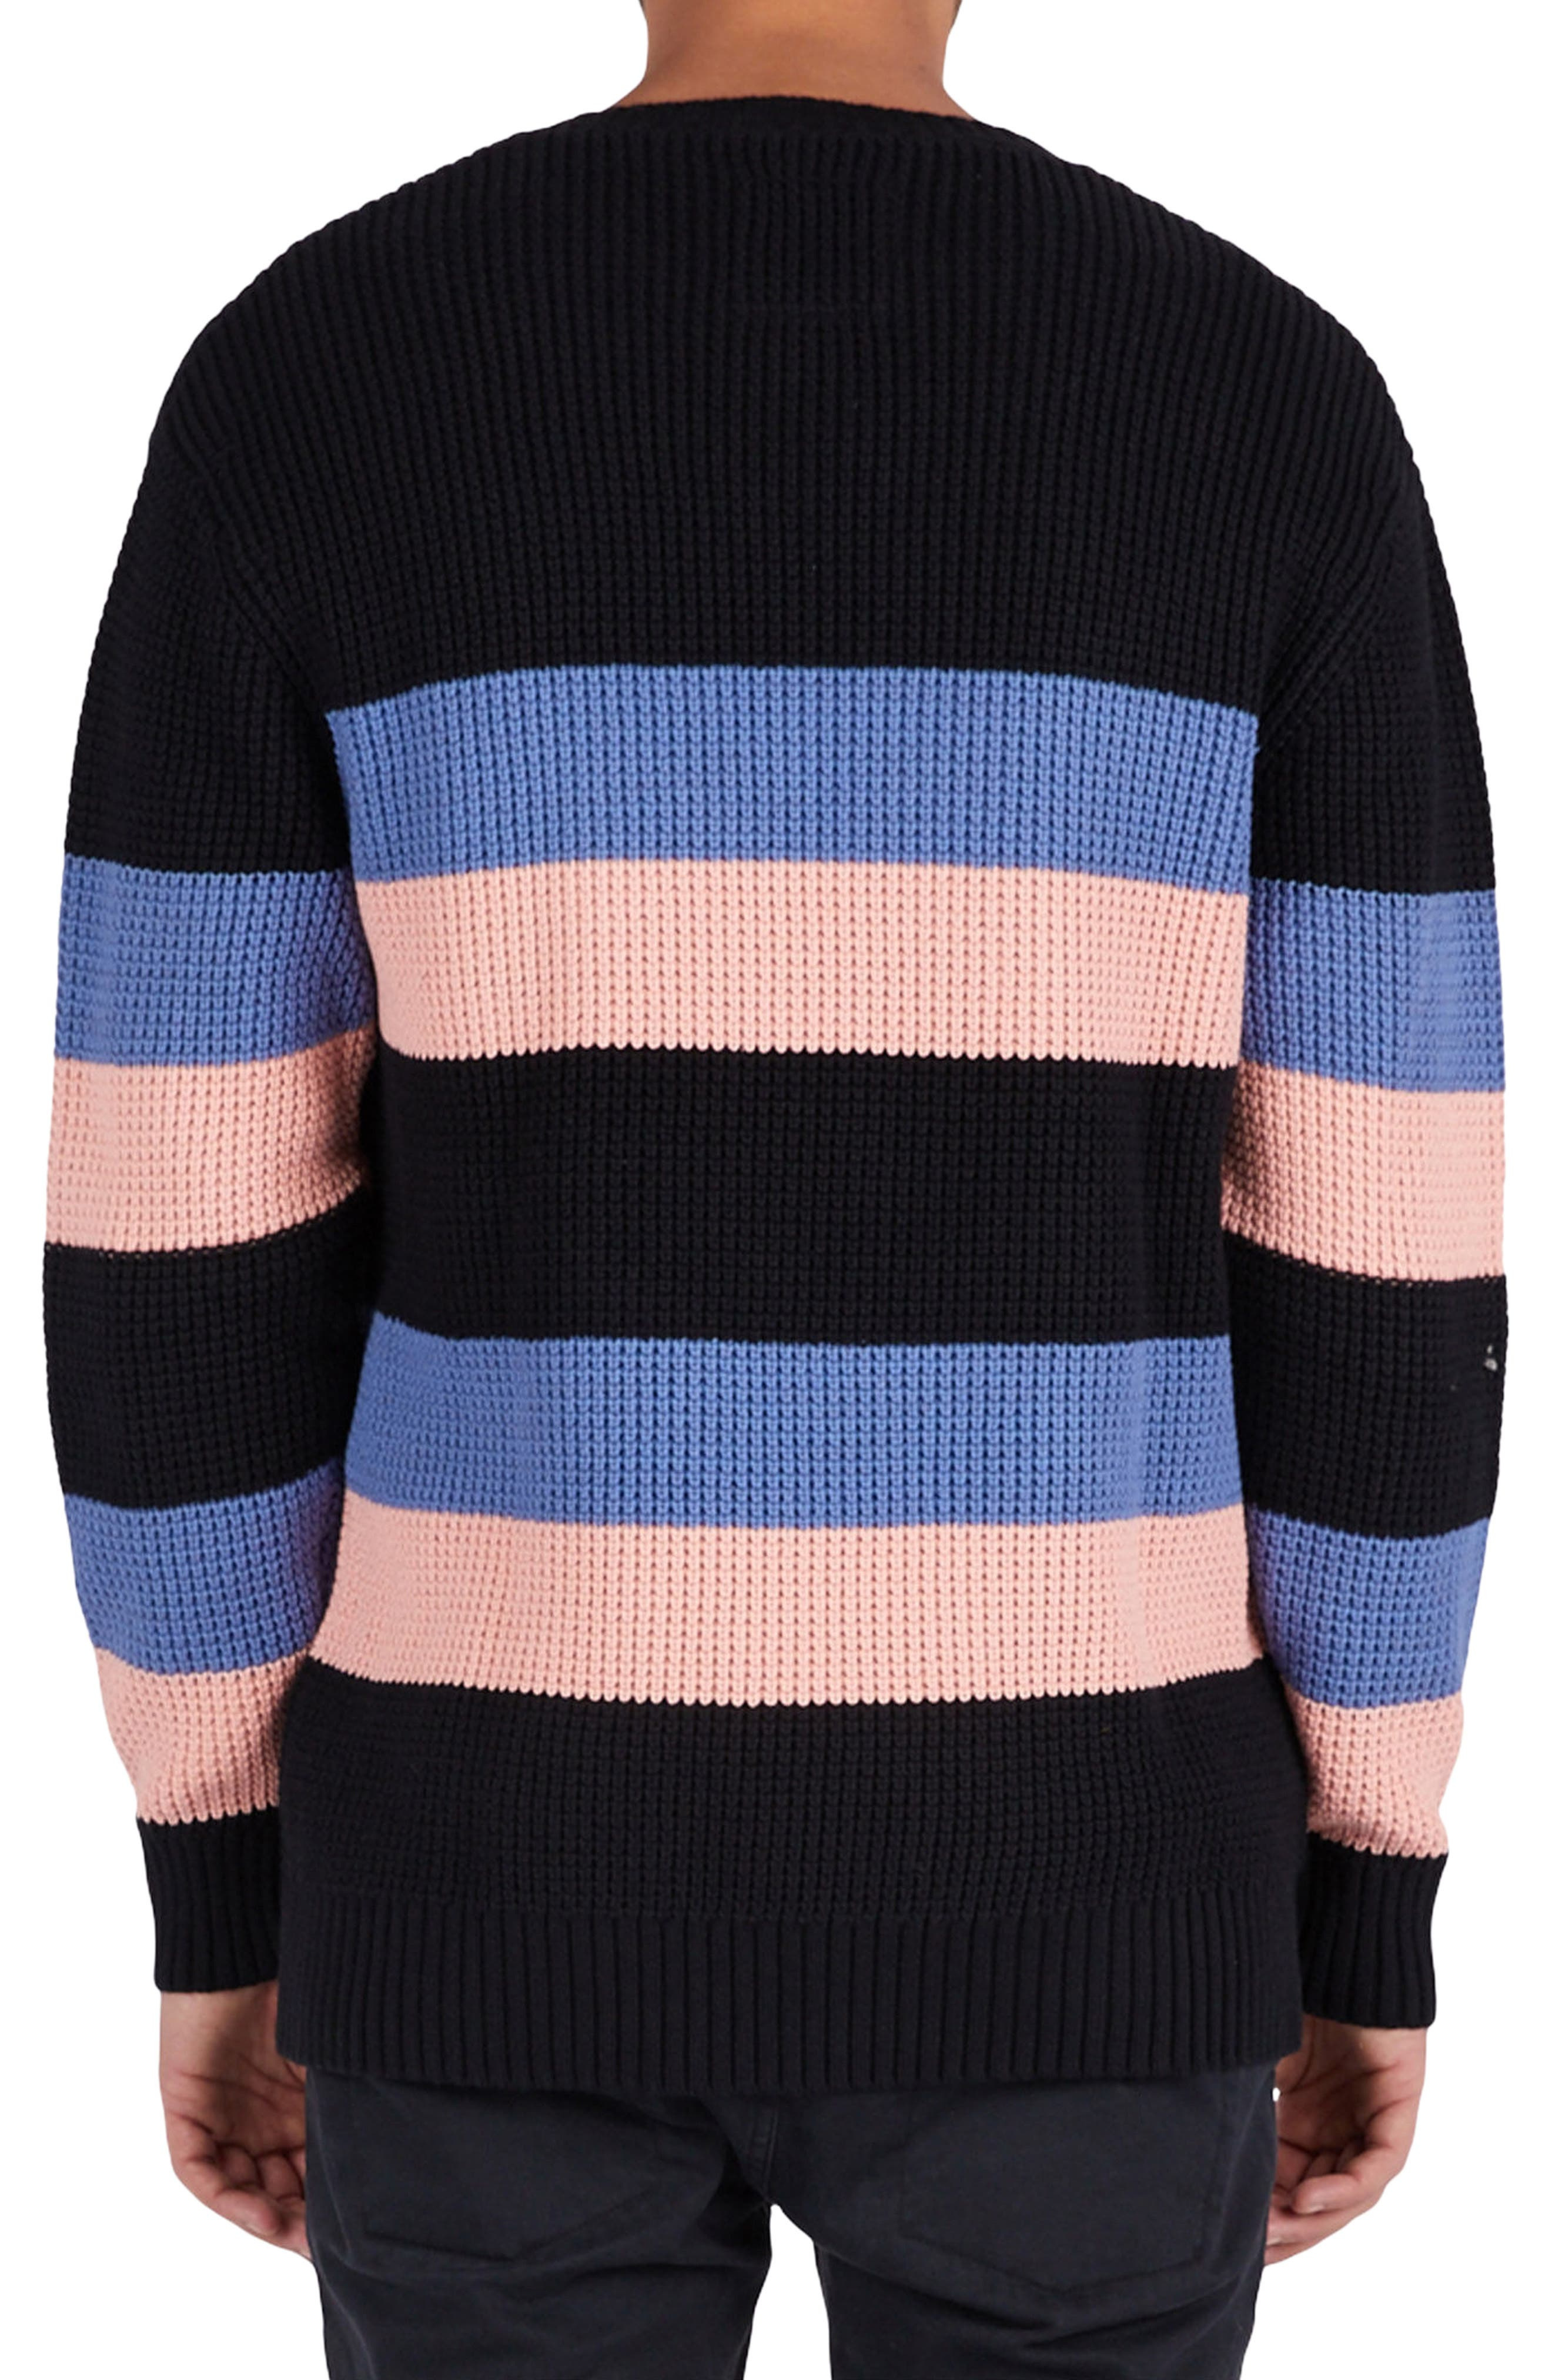 Rugby Stripe Sweater,                             Alternate thumbnail 2, color,                             Black/ Pink